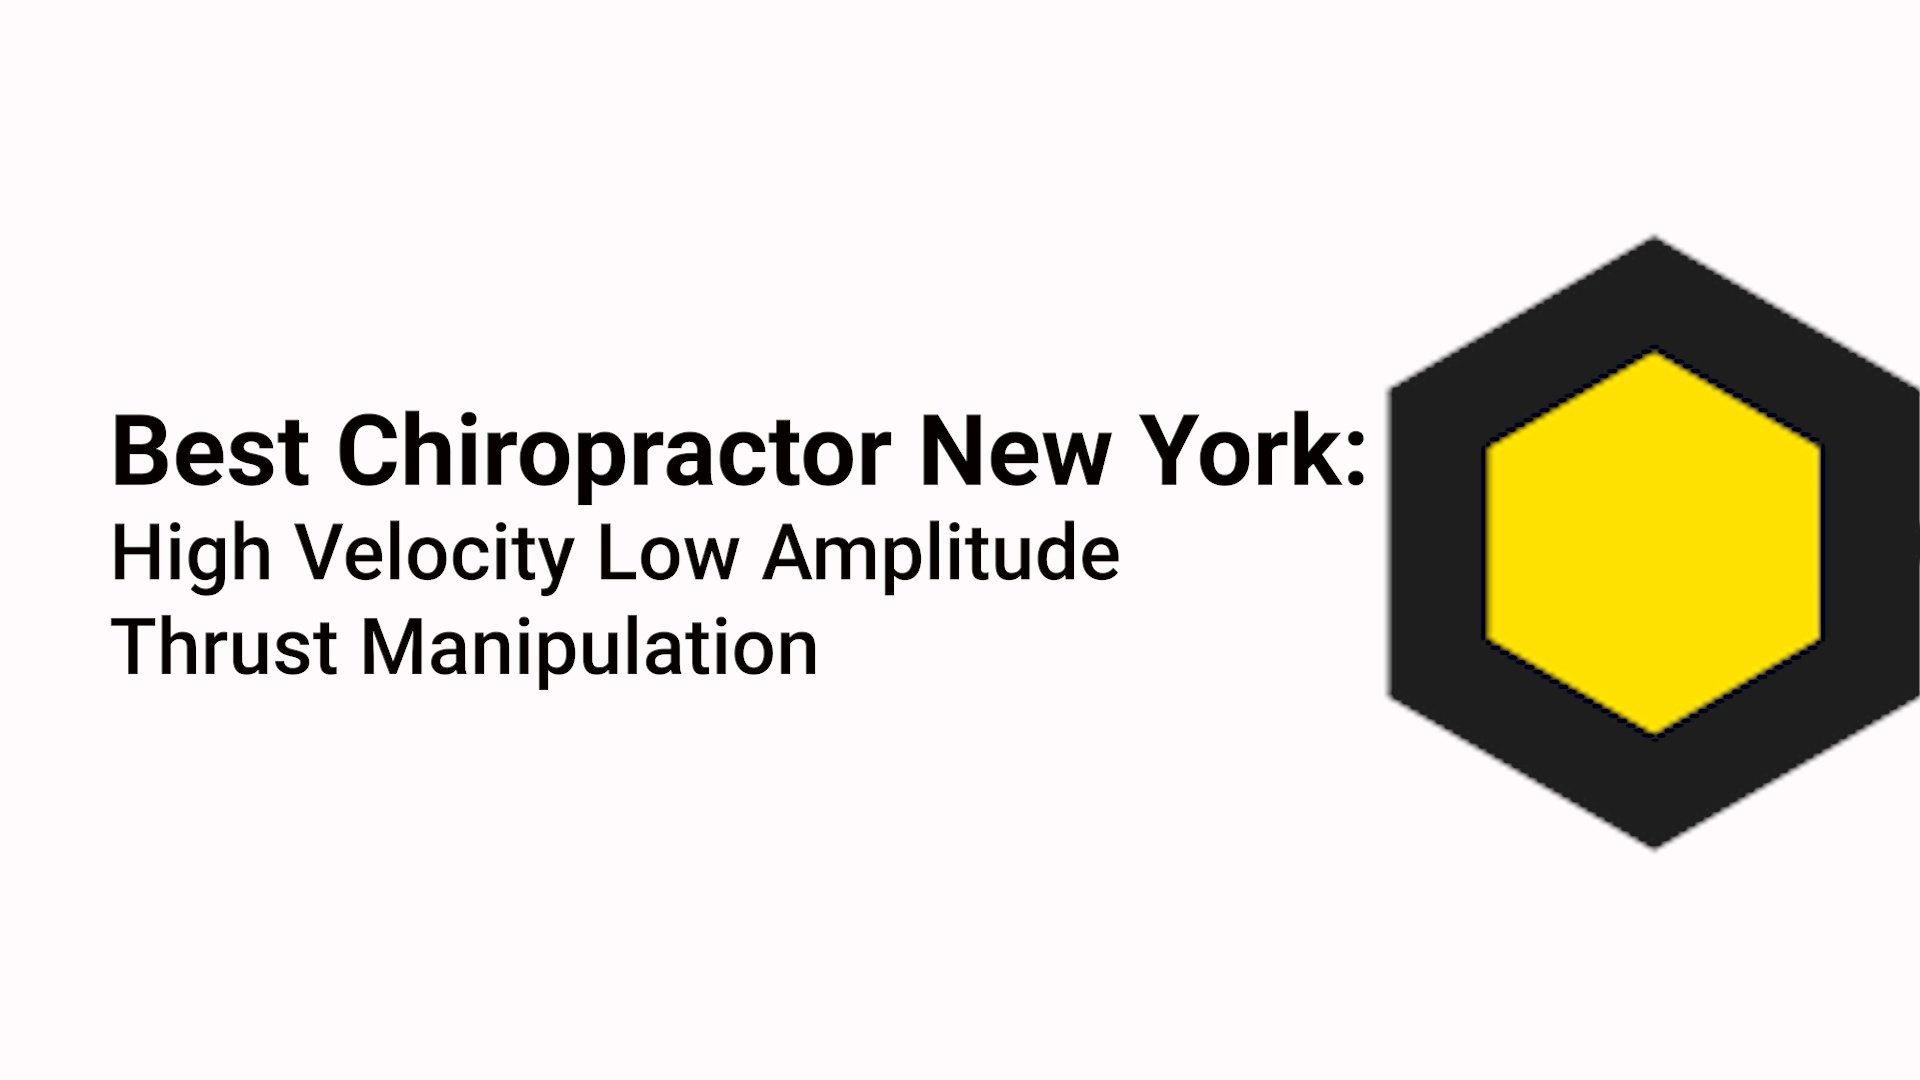 how to become a chiropractor in ny